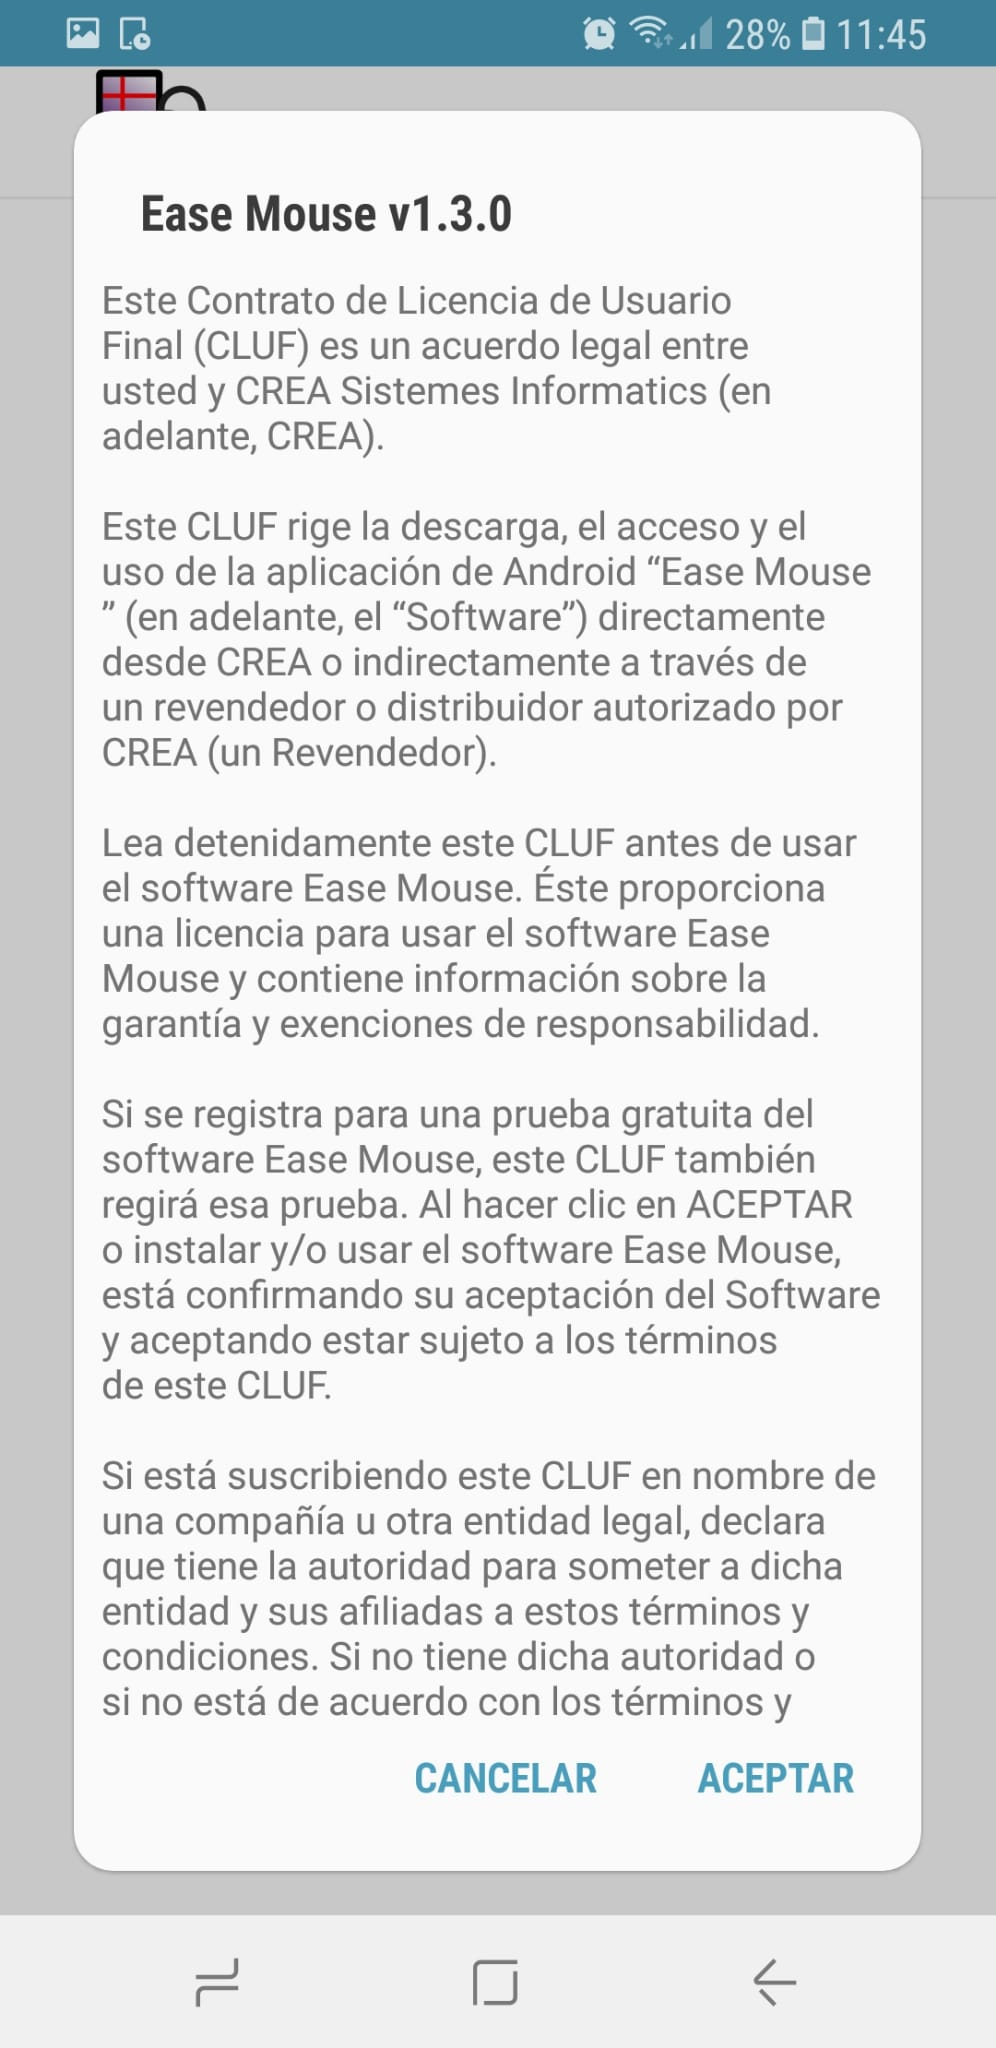 Ease mouse license agreement